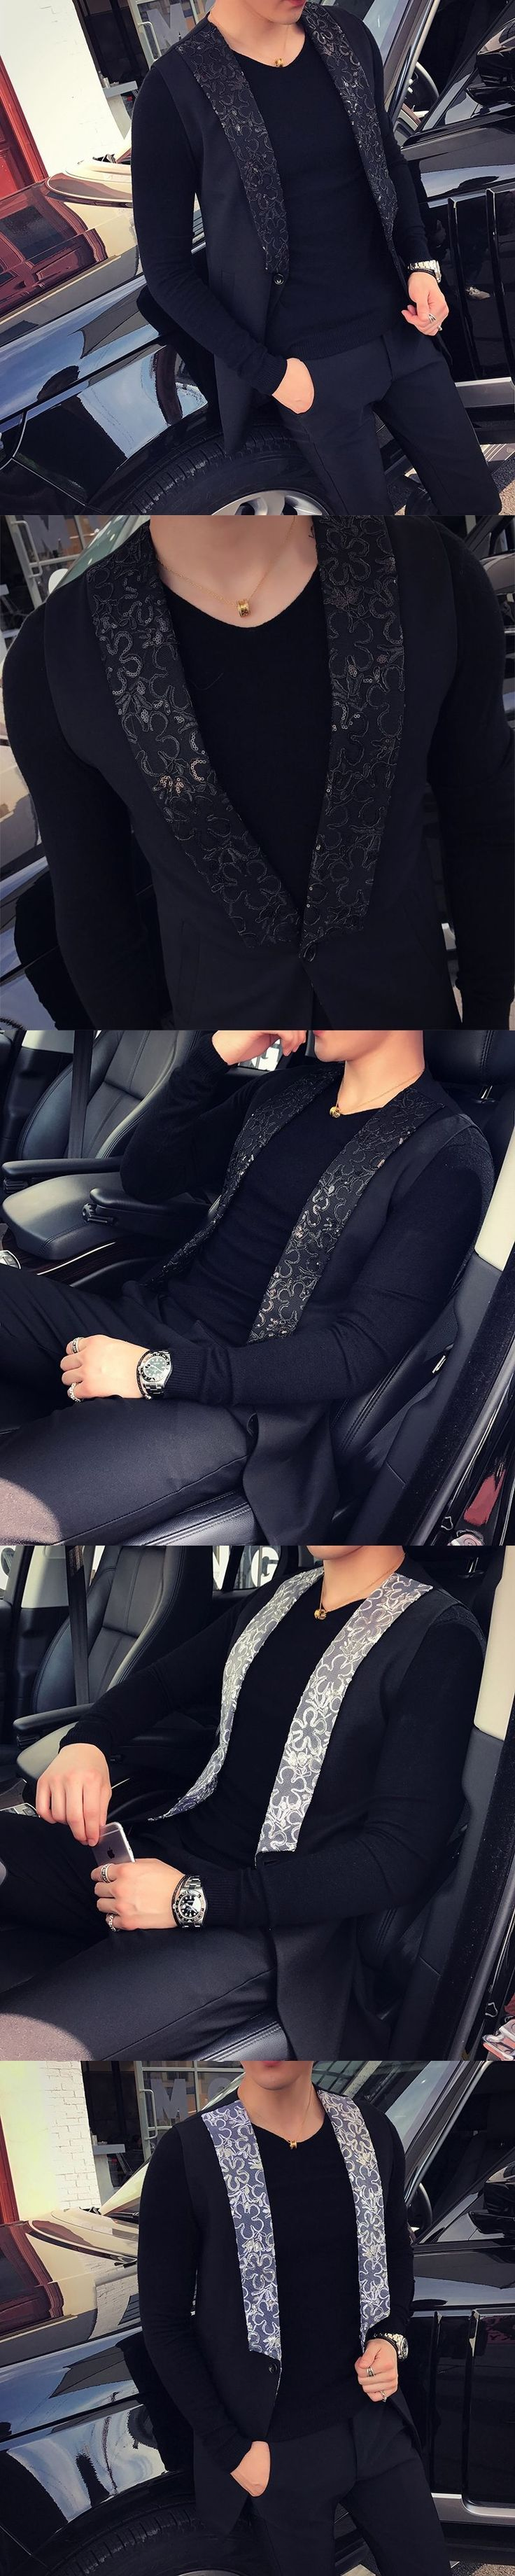 2017 Mens Sleeveless Jackets Mens Flower Printed Vest Mens Nigh Club Outfits Trendy Baroque Vest Luxury Waistcoat Slim Fit #cluboutfits